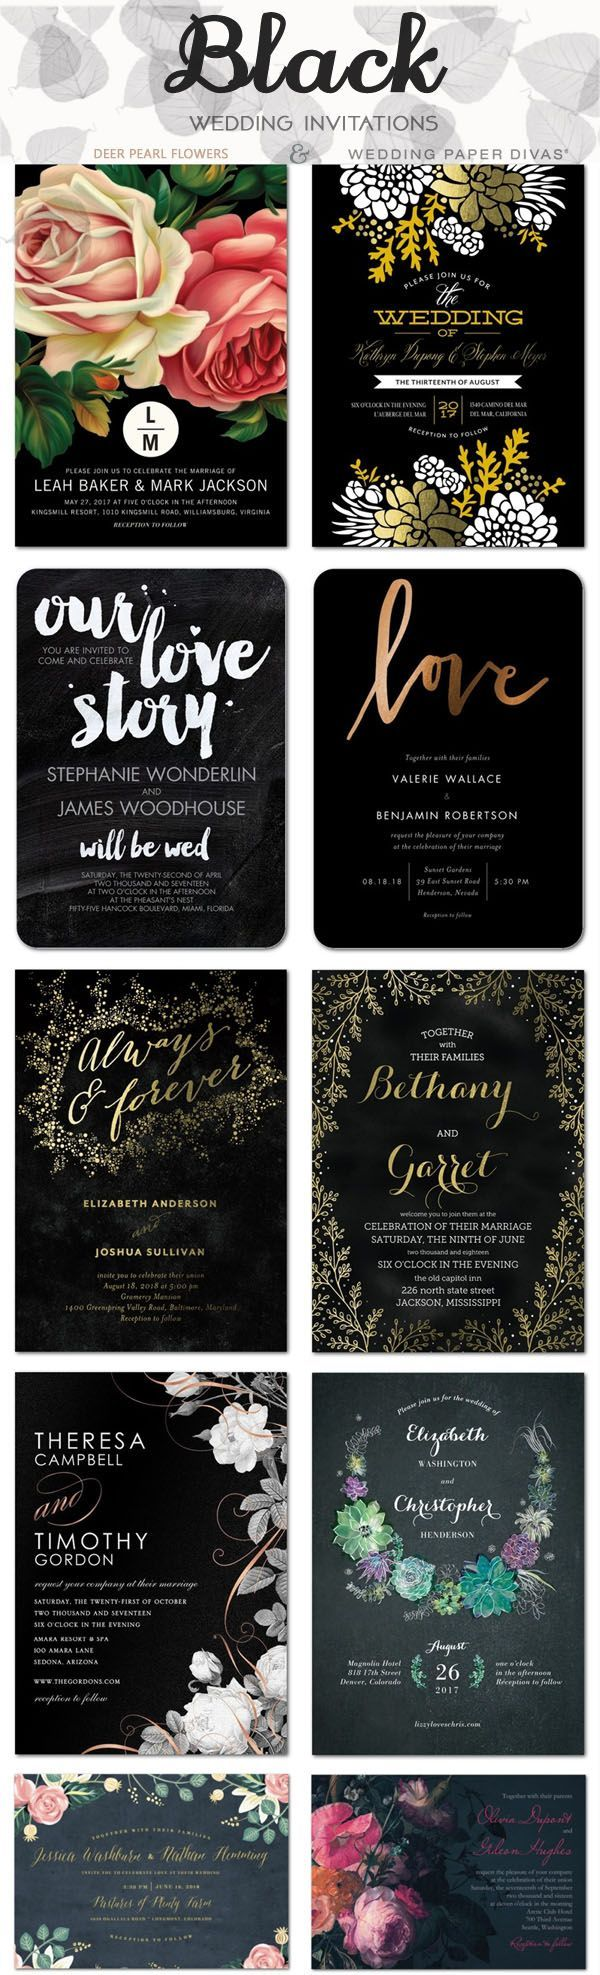 lotus flower wedding invitations%0A Black wedding color ideas  black wedding invitations    http   www deerpearlflowers